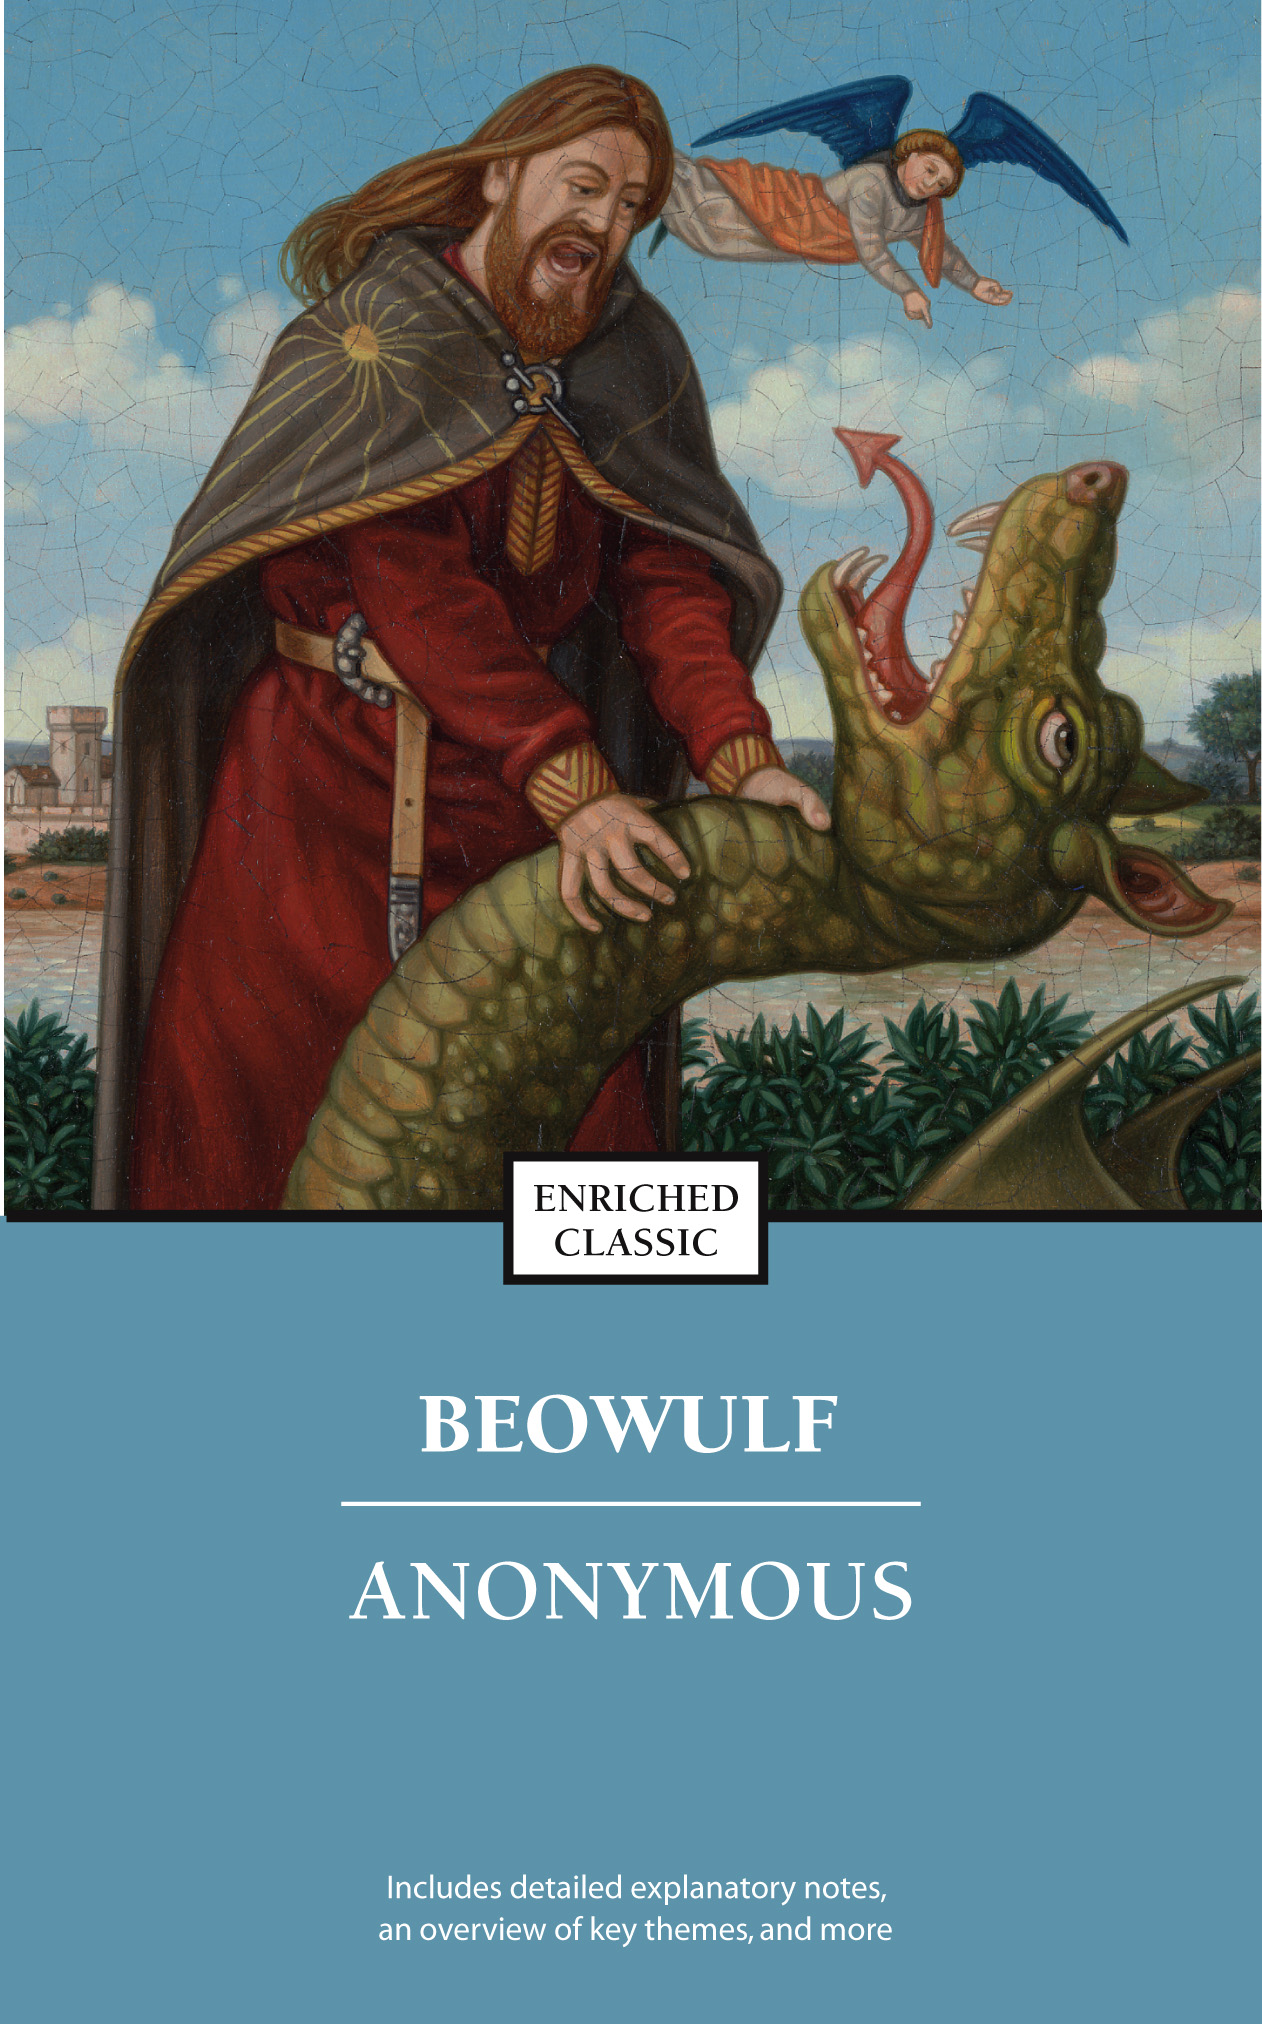 an analysis of the tale of beowulf The tale of beowulf keep a memory of me begin your character analysis of the monster with a sentence stating your general assessment of grendel as a character.